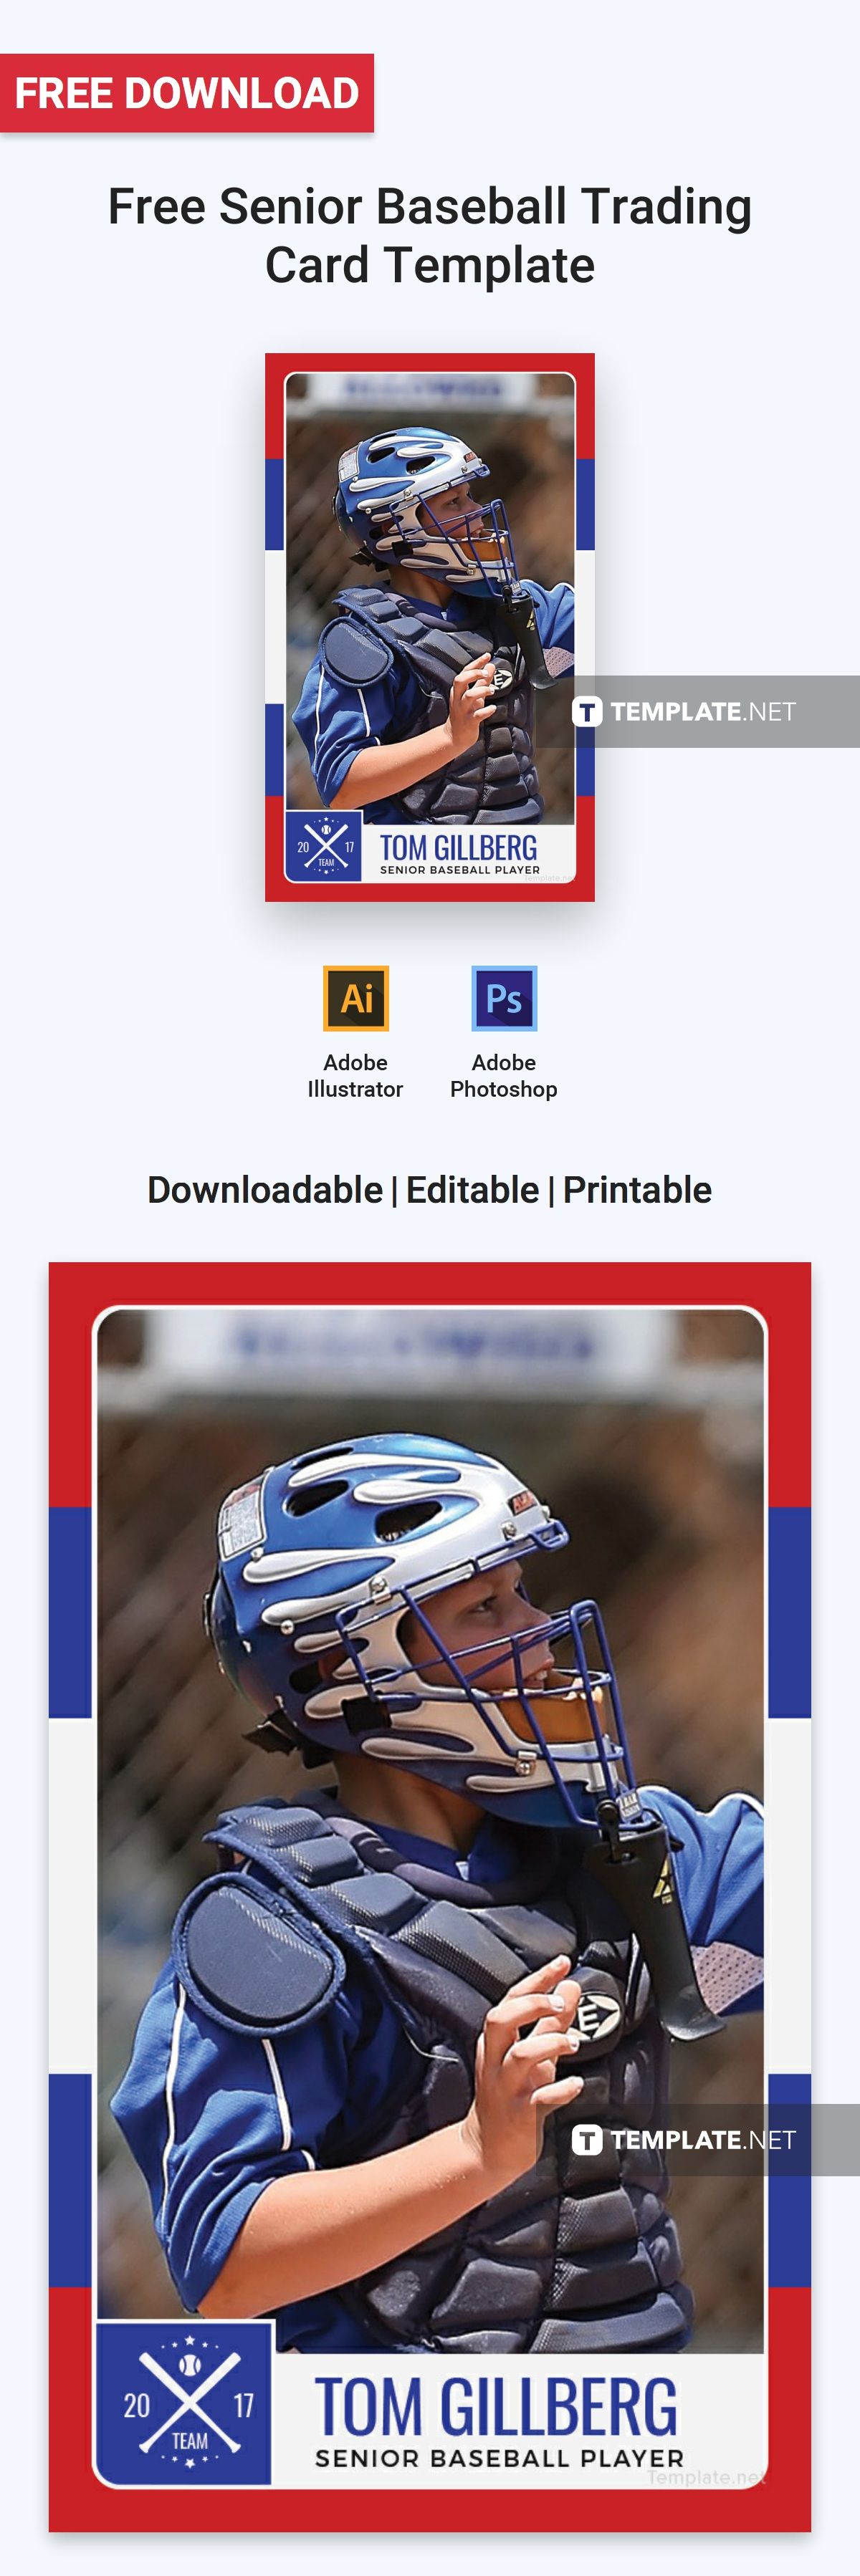 Free Senior Baseball Trading Card Template Word Doc Psd Apple Mac Pages Illustrator Publisher Baseball Trading Cards Trading Card Template Baseball Card Template